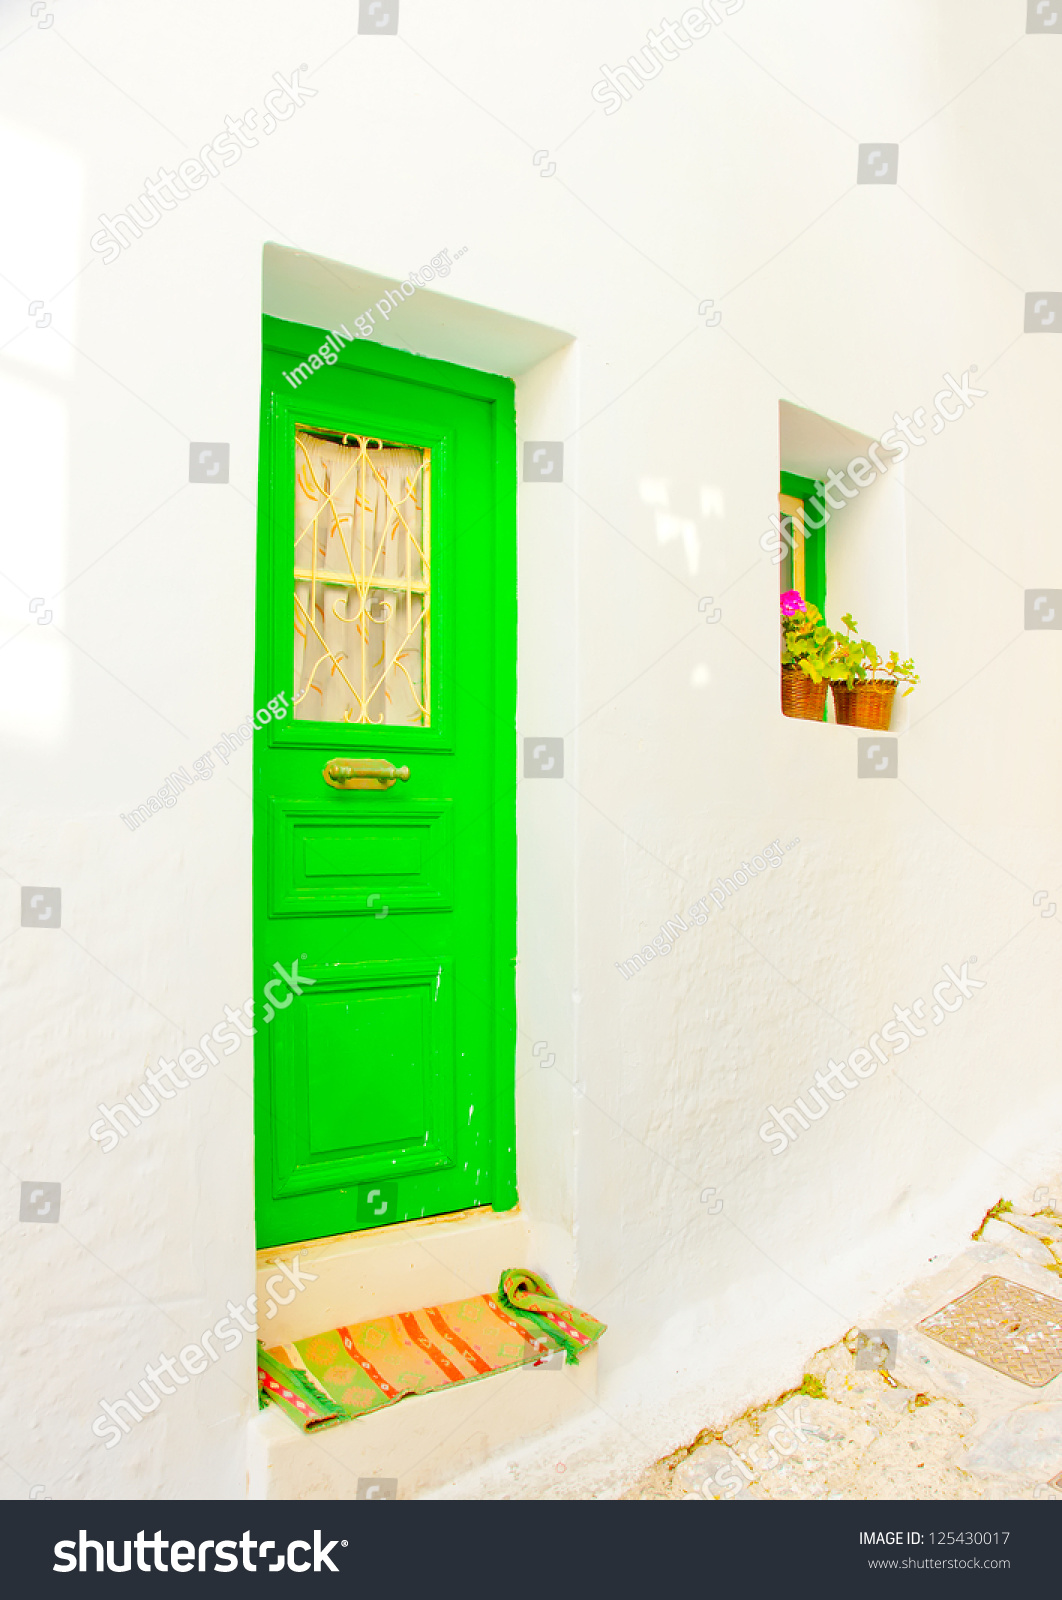 Old beautiful traditional house in chora the capital of amorgos island - A Beautiful Green Colored Wooden Door Of A Traditional Old House In Chora The Capital Of